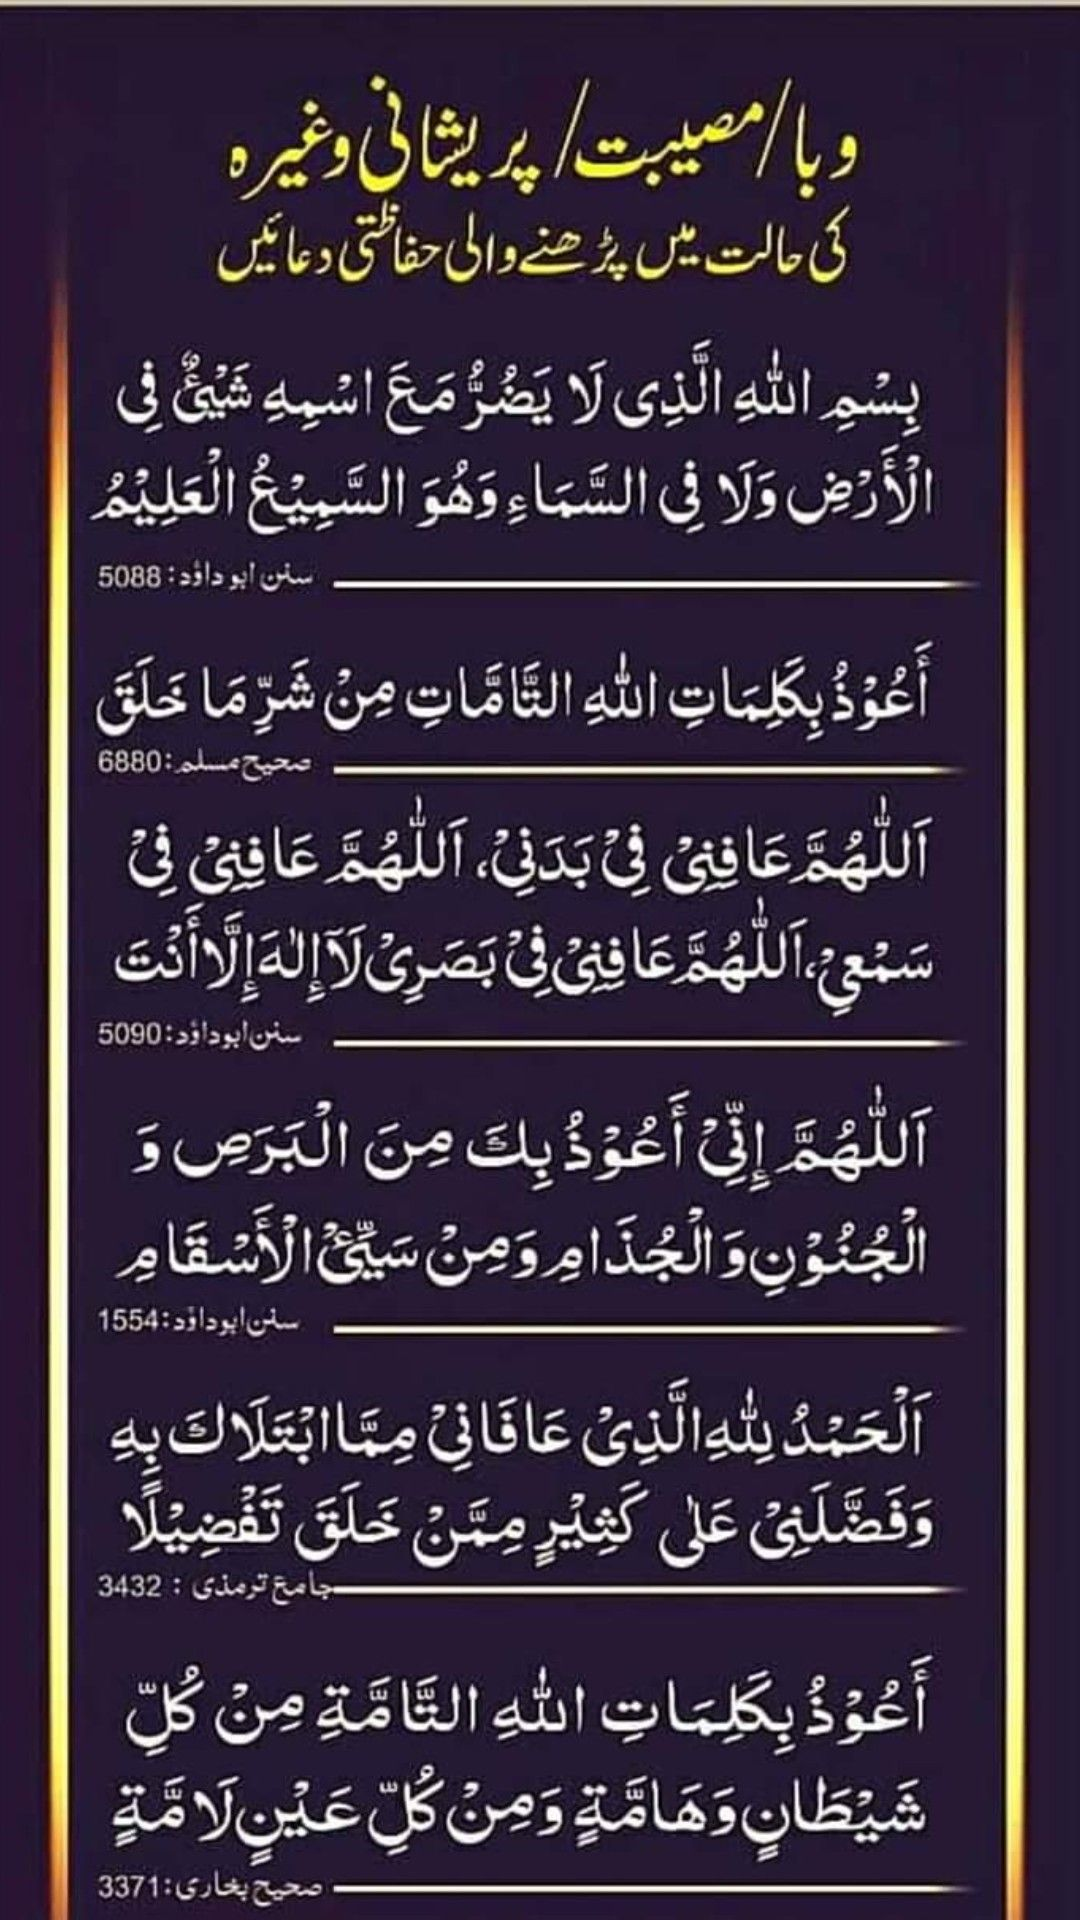 Pin By Tanvir Ayesha On Dua Islamic Love Quotes Quran Quotes Islamic Quotes